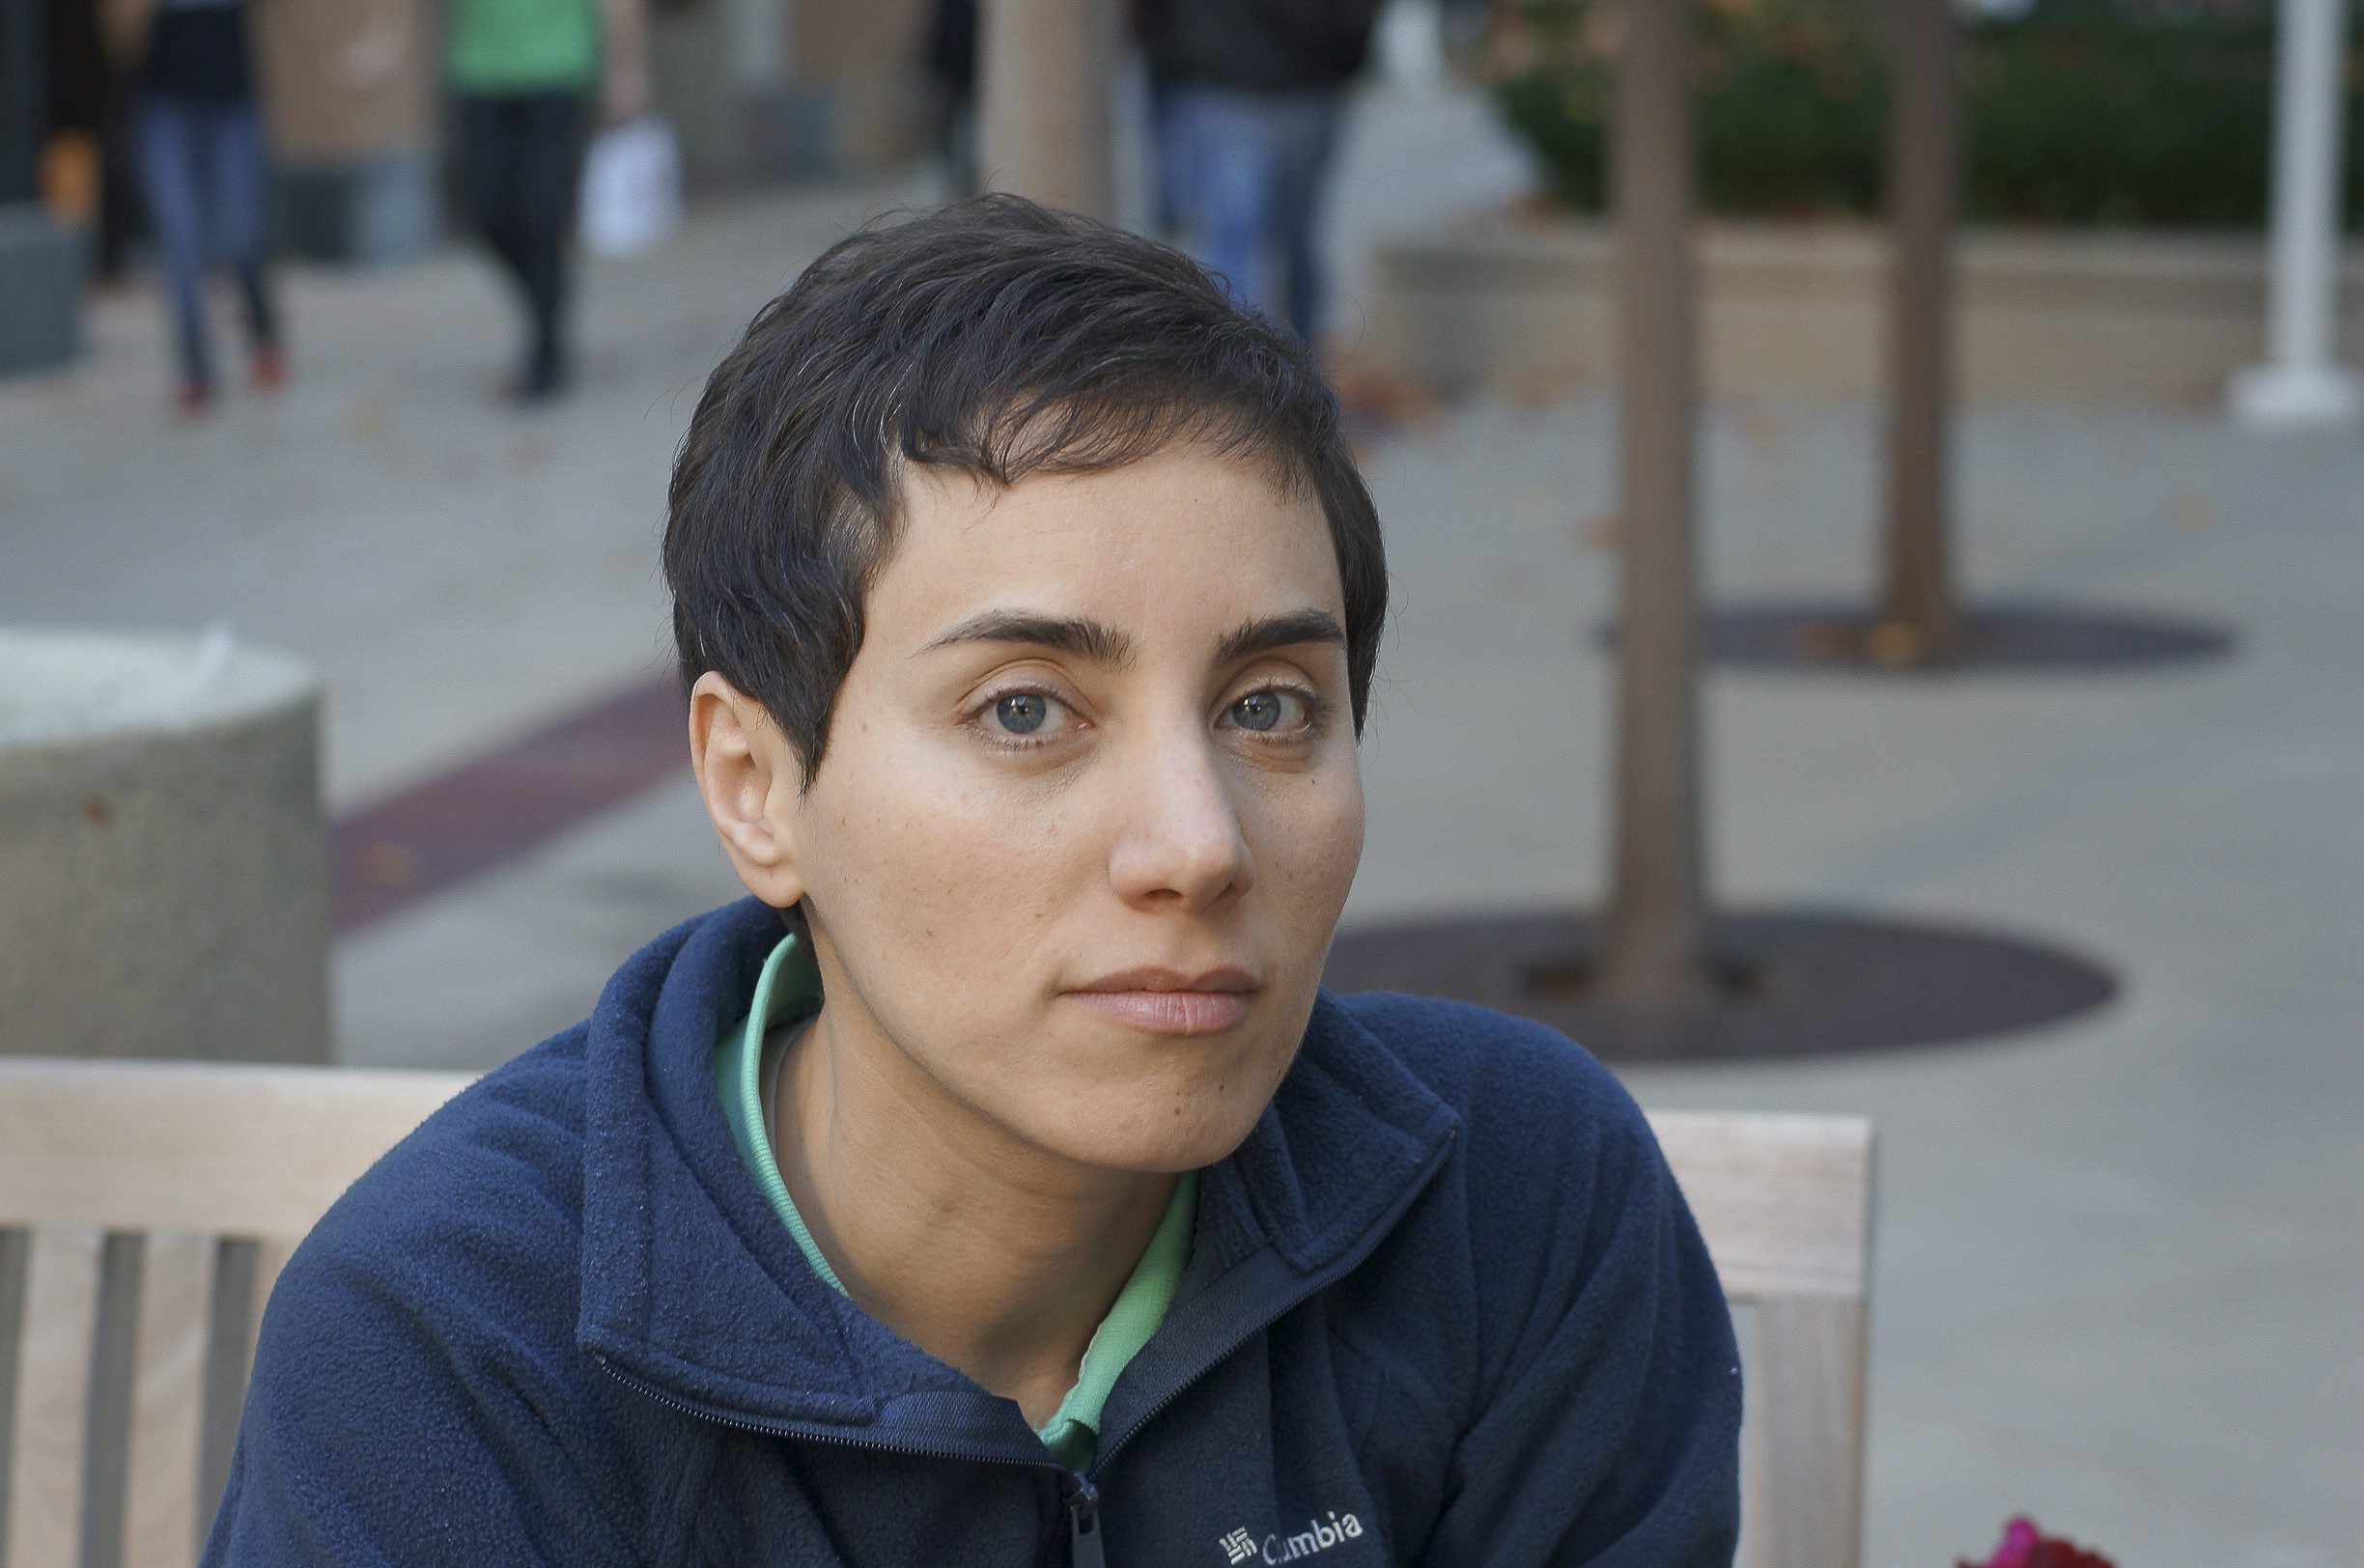 Iranian Professor of mathematics Maryam Mirzakhani